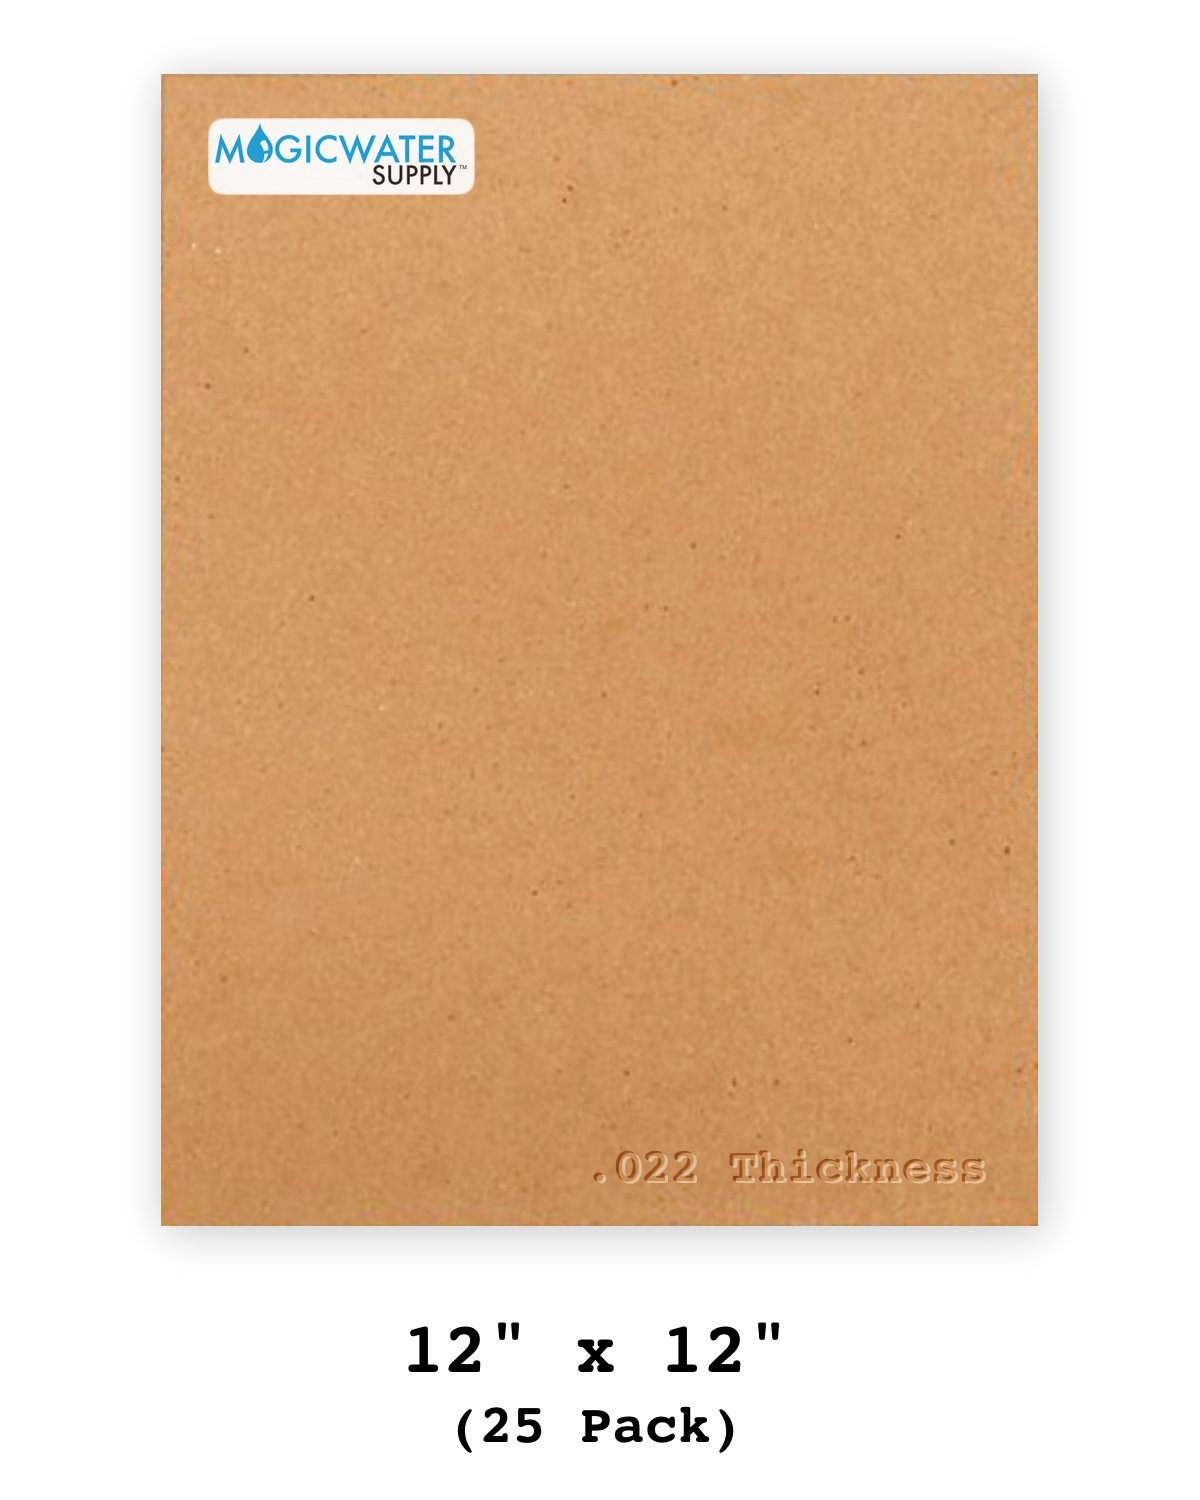 25 Chipboard Sheets 12 x 12 inch - 22pt (Point) Light Weight Brown Kraft Cardboard for Scrapbooking & Picture Frame Backing (.022 Caliper Thick) Paper Board | MagicWater Supply MWS